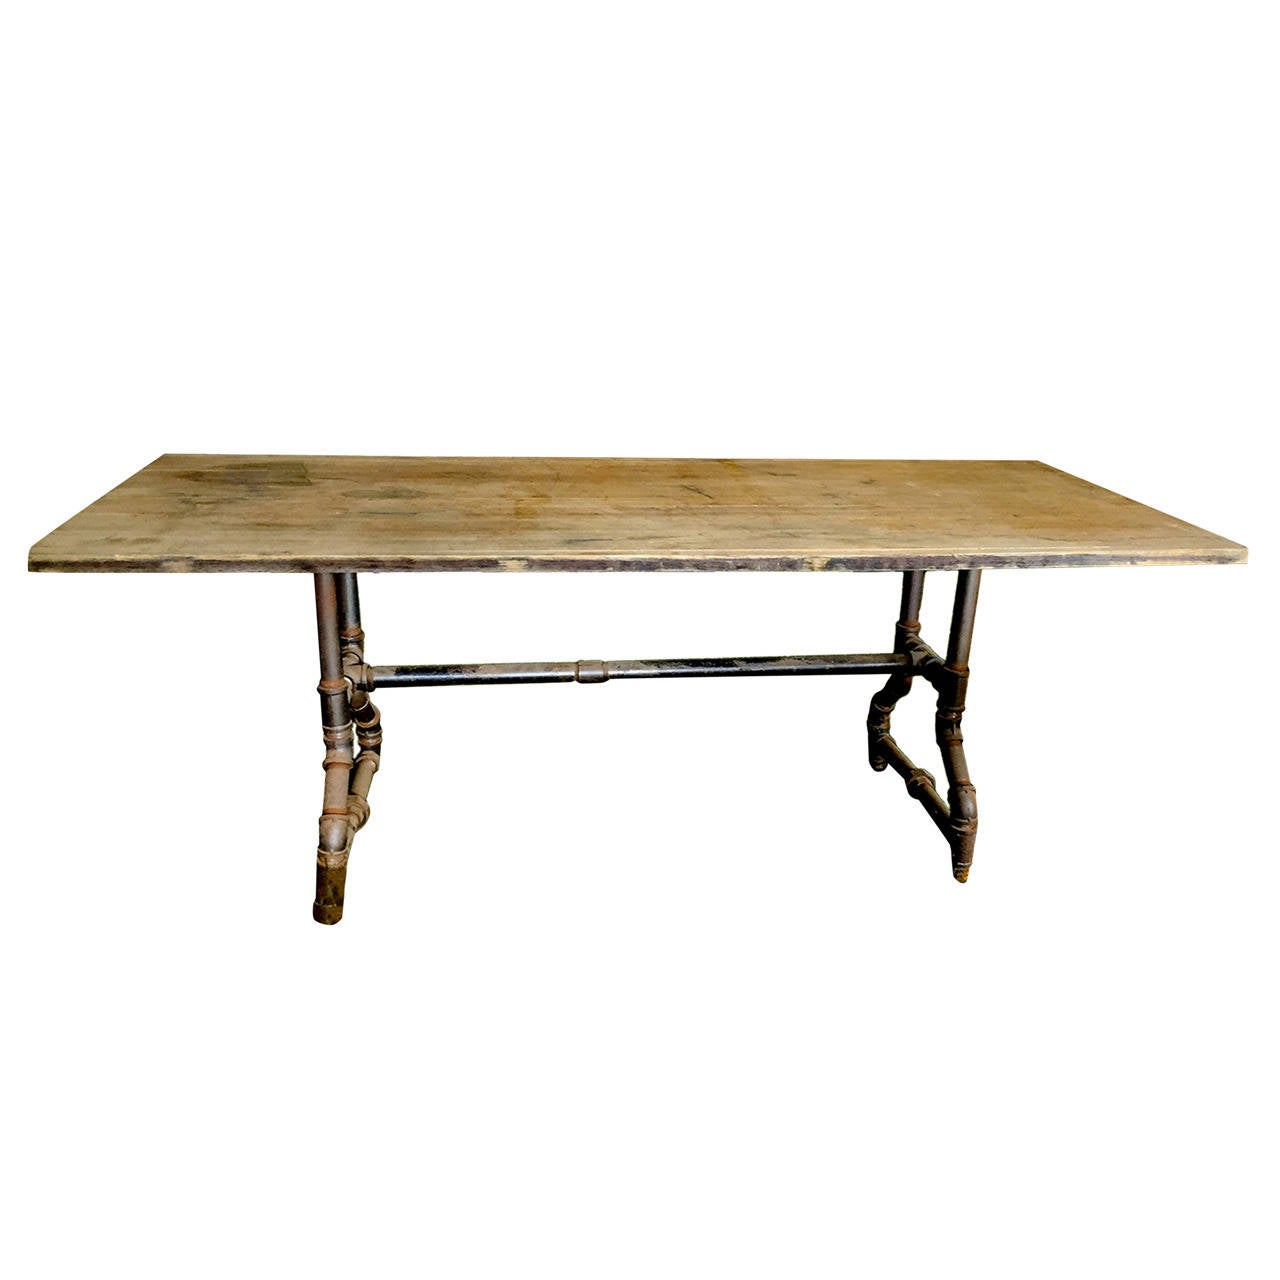 Unusual rectangular industrial dining table for sale at for Unusual dining tables for sale